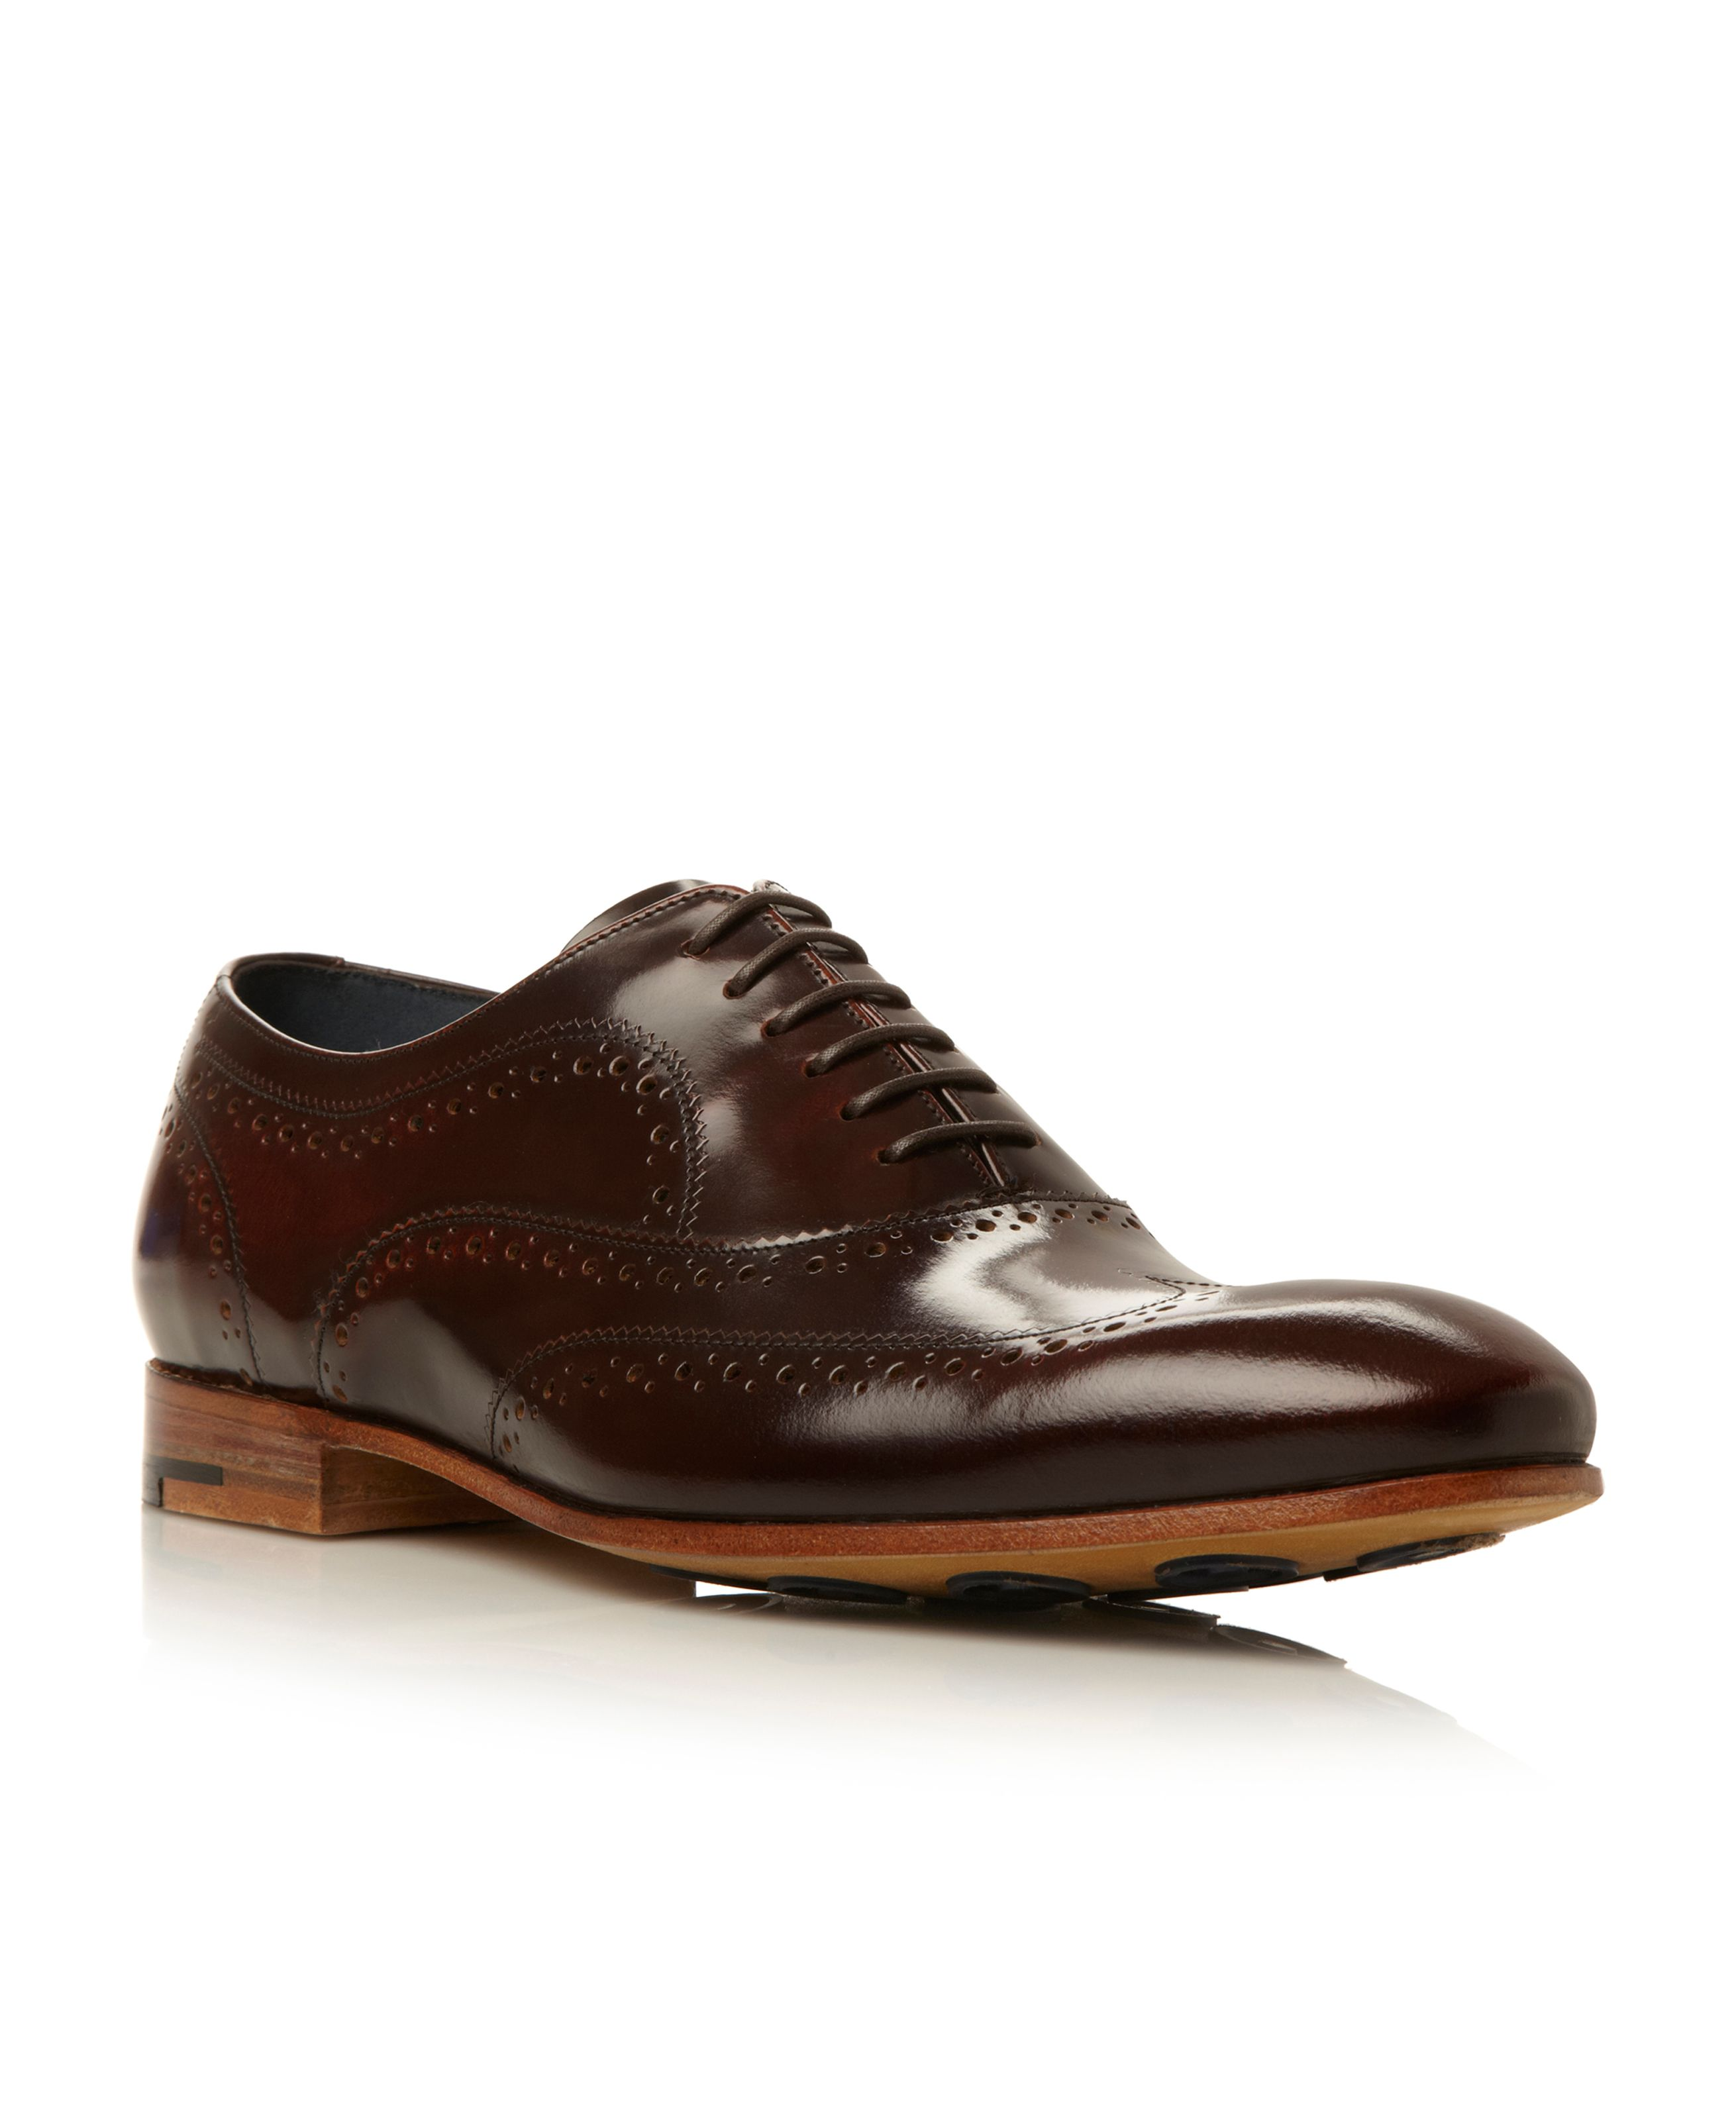 Holmes oxford lace up brogue